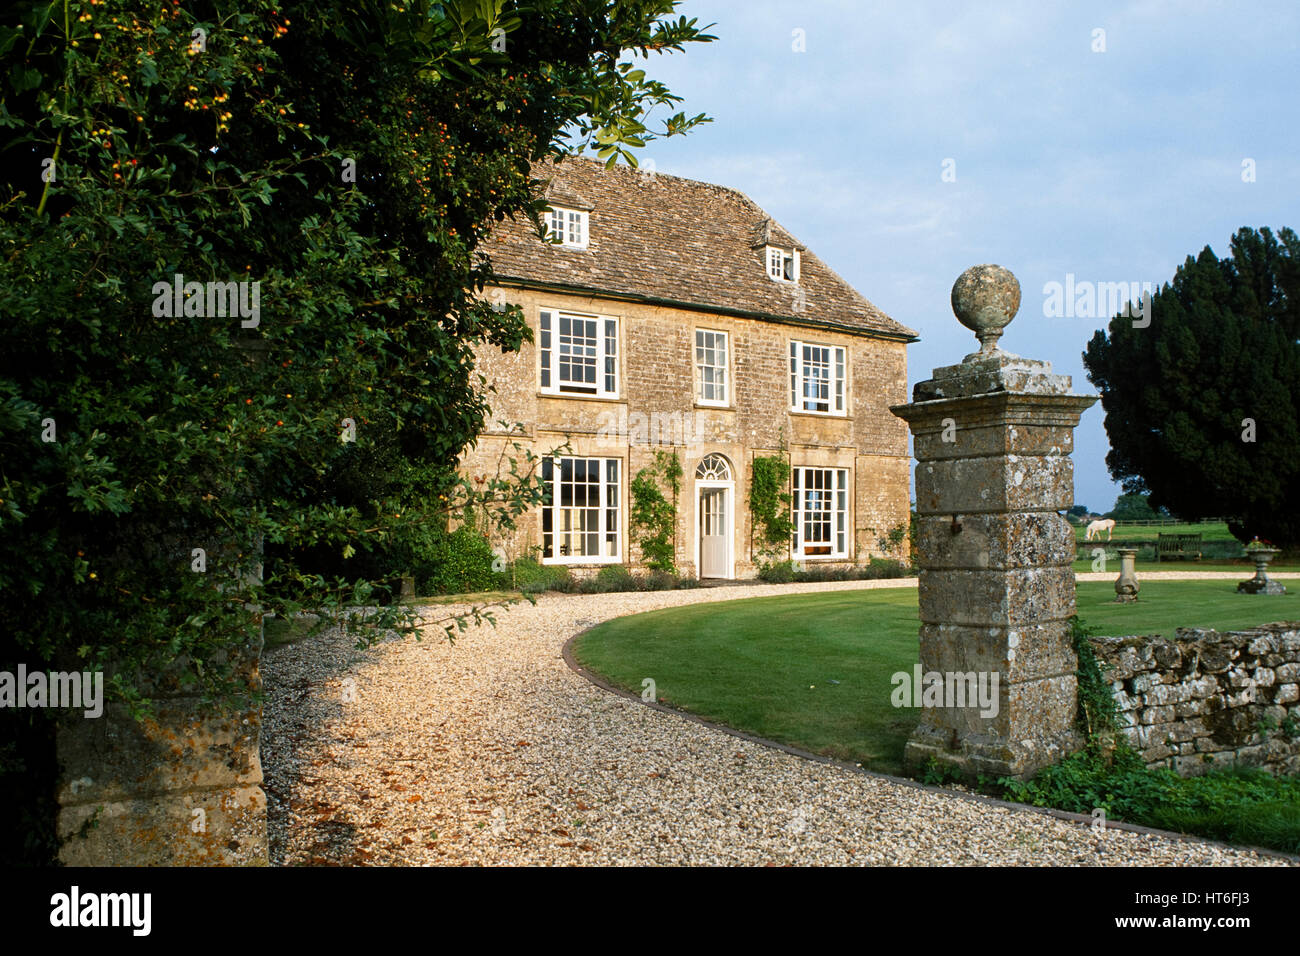 Driveway of country house. - Stock Image